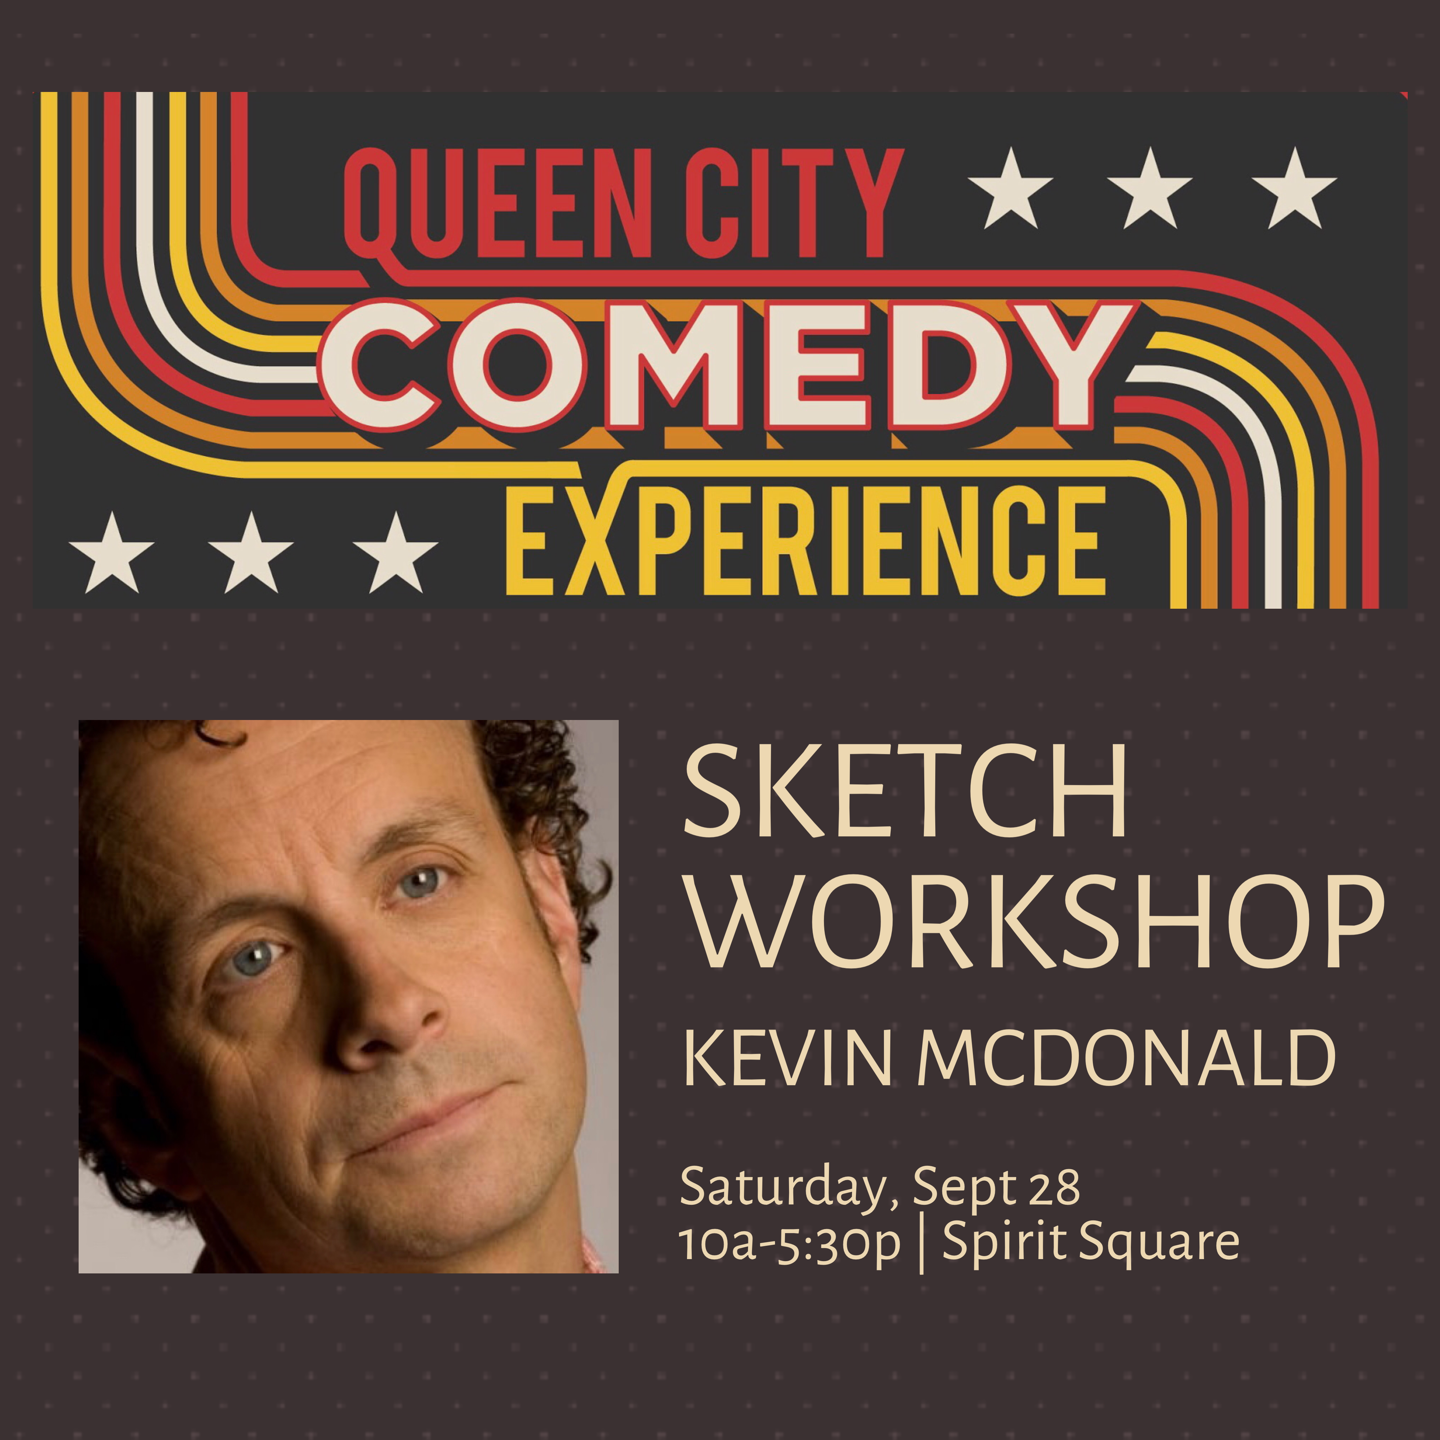 Queen City Comedy Experience Workshop: Learn Sketch Writing from Kevin McDonald from Kids in the Hall